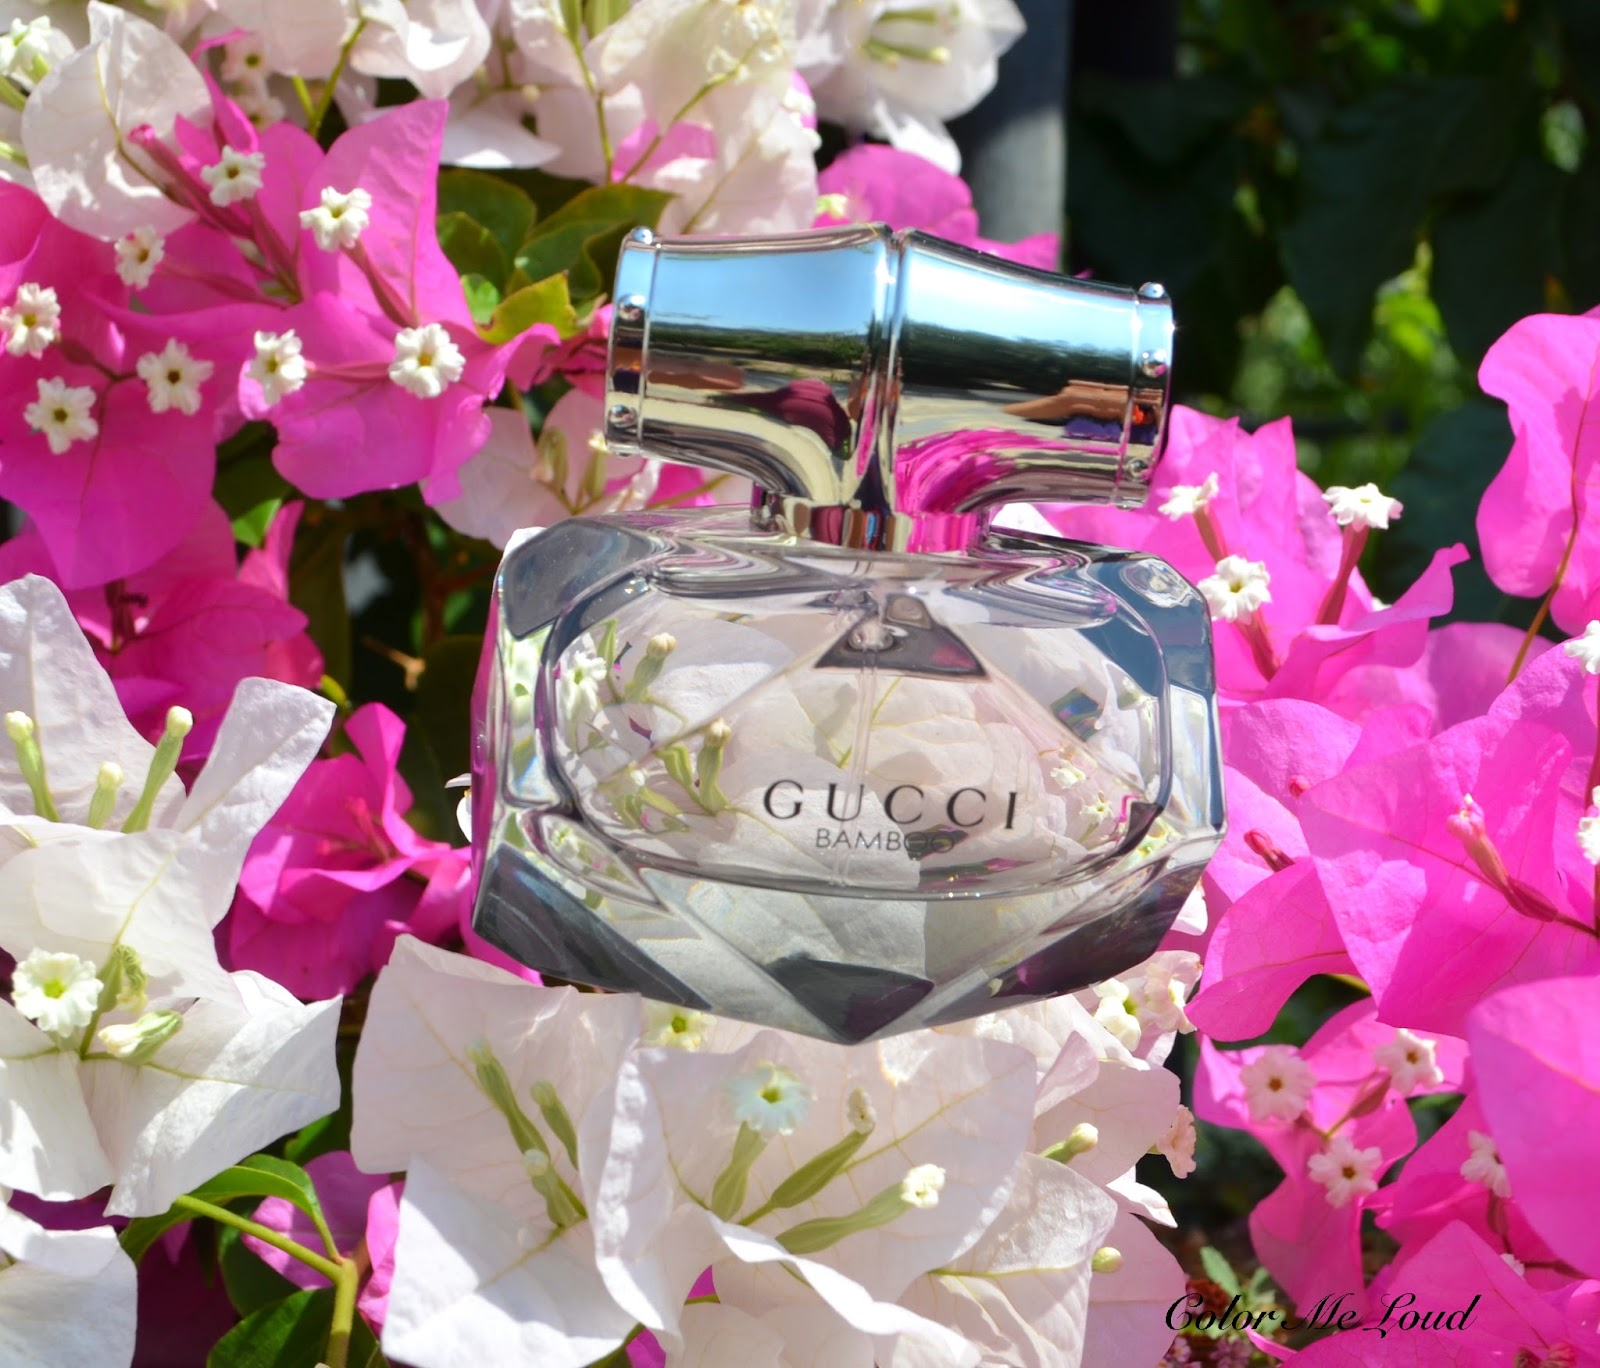 Gucci Bamboo Eau De Parfum Review Photos Color Me Loud